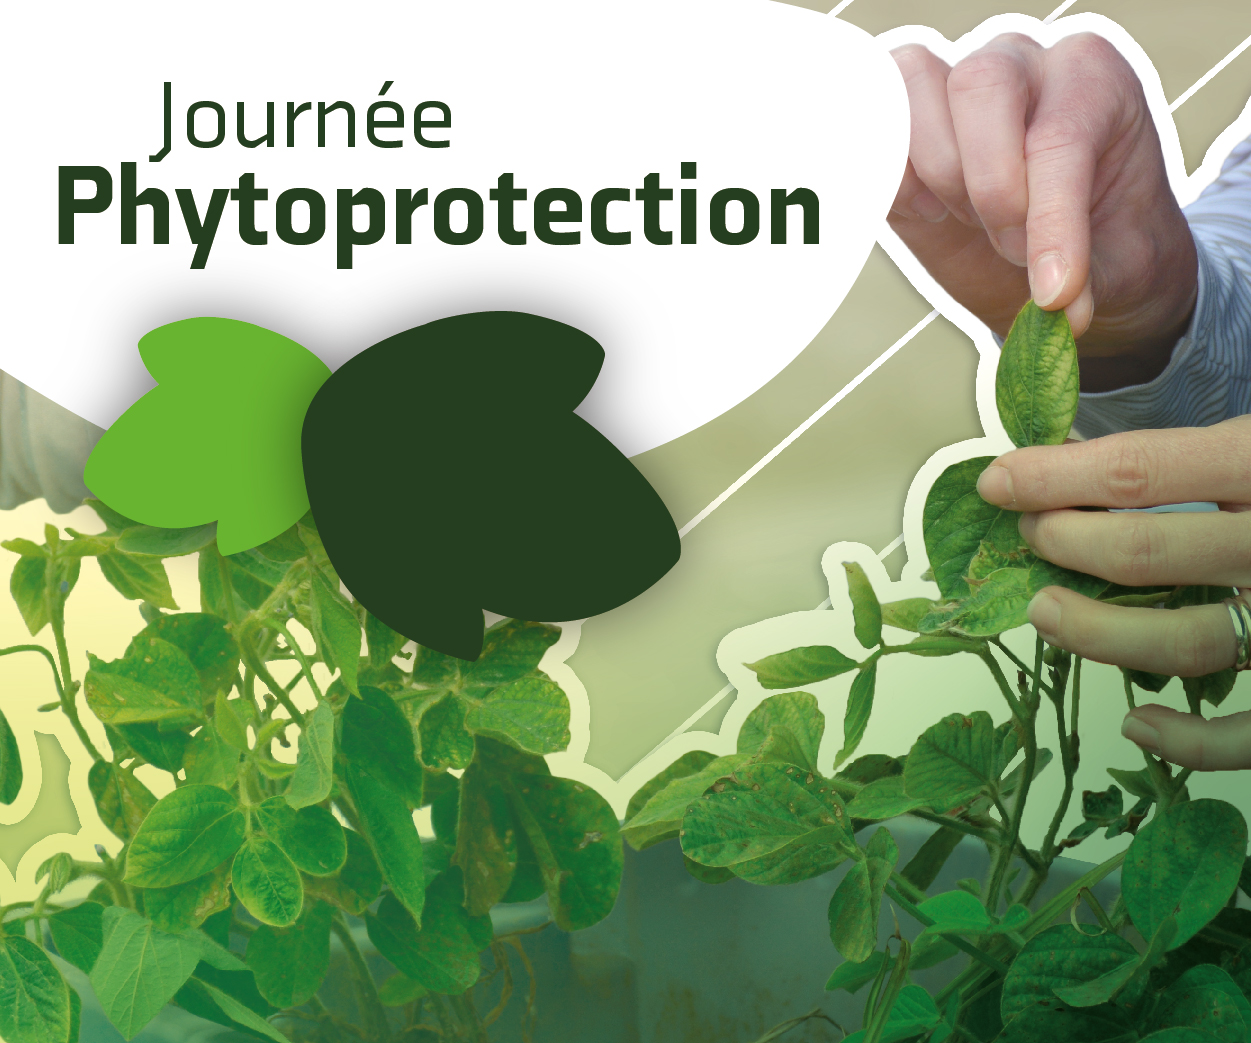 Journée phytoprotection 2019